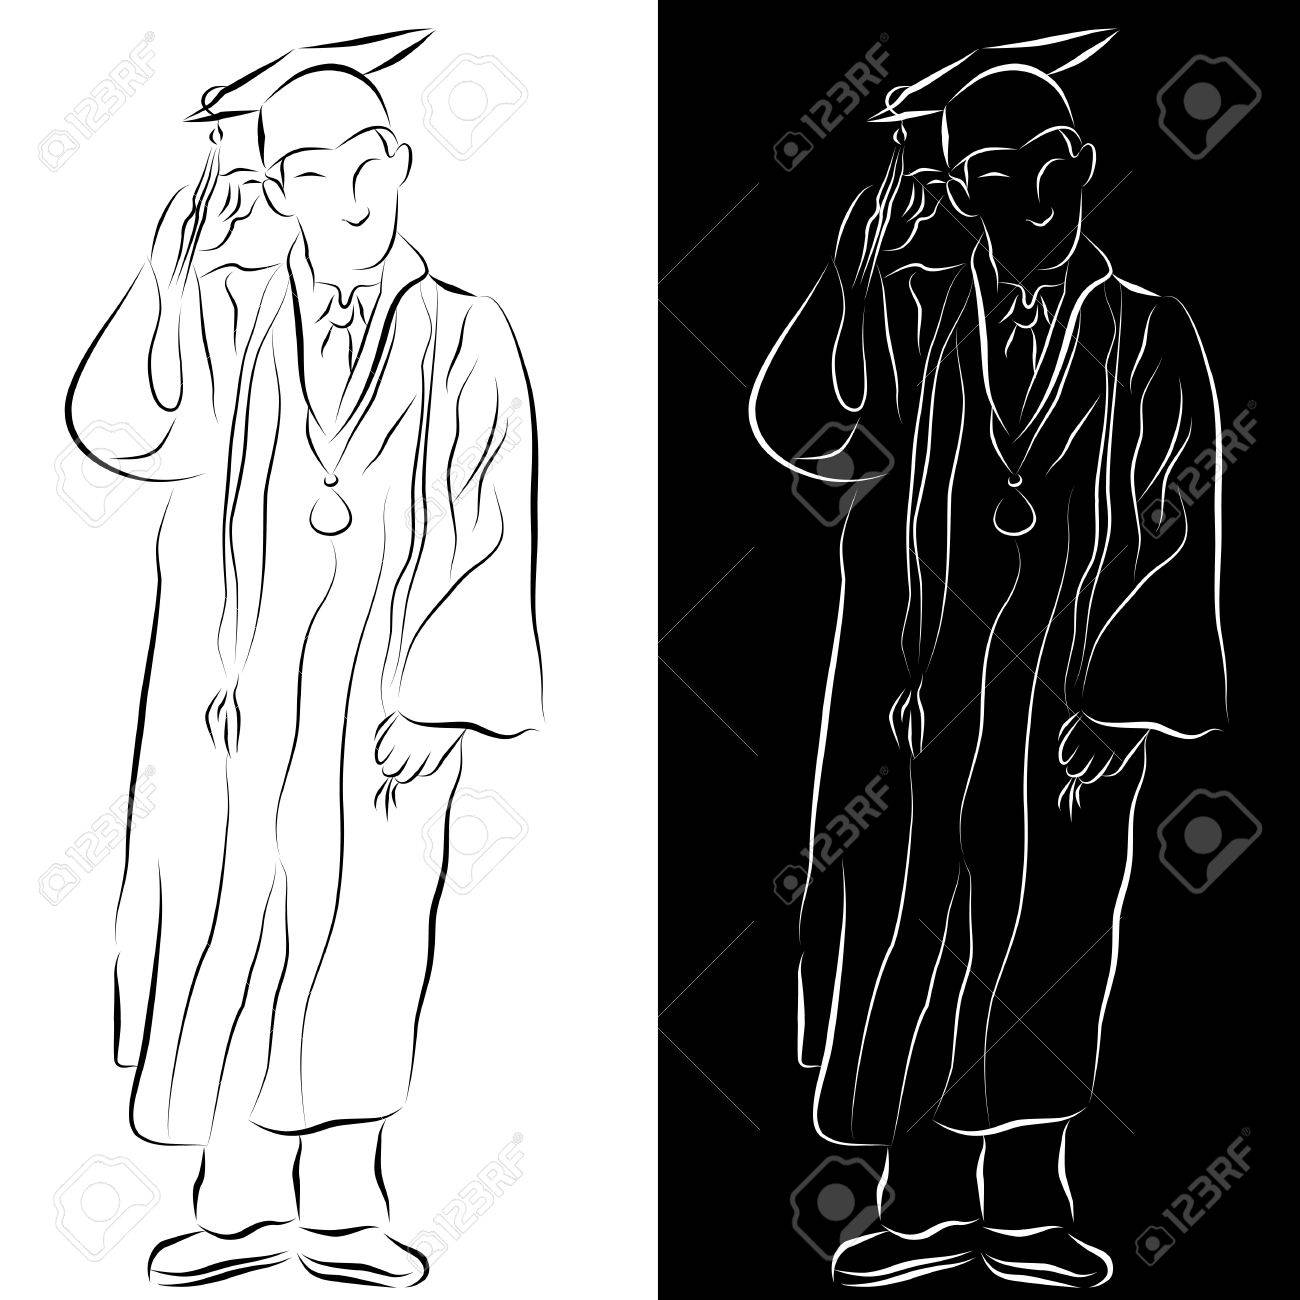 An image of a student dressed in a graduation gown line drawing. Stock Vector - 9552285